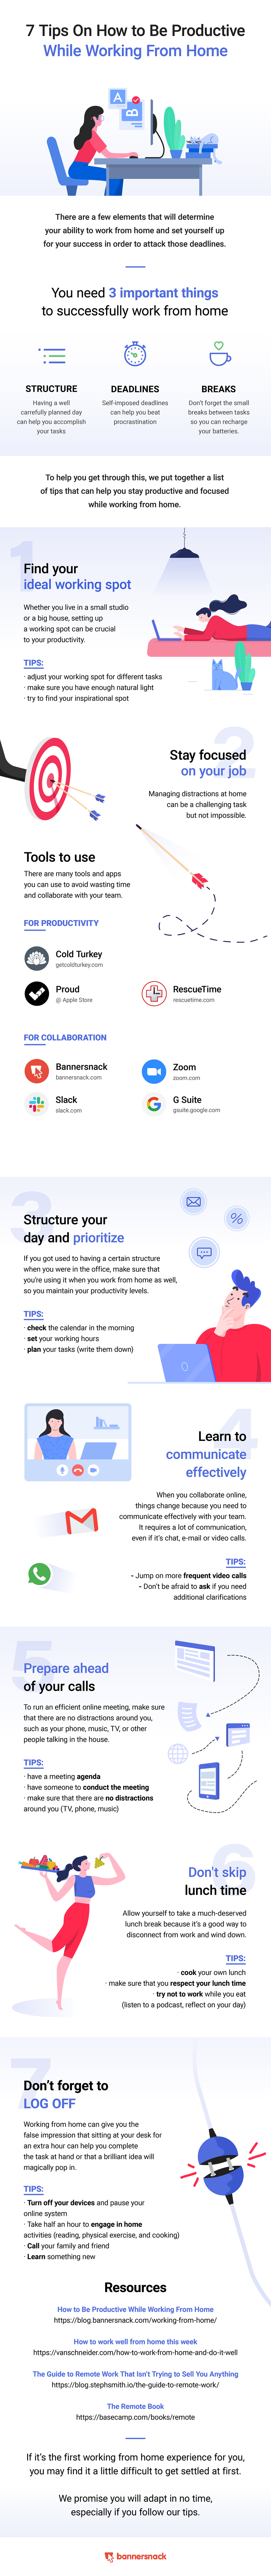 Infographic: 7 Tips on How to Be More Productive While Working From Home